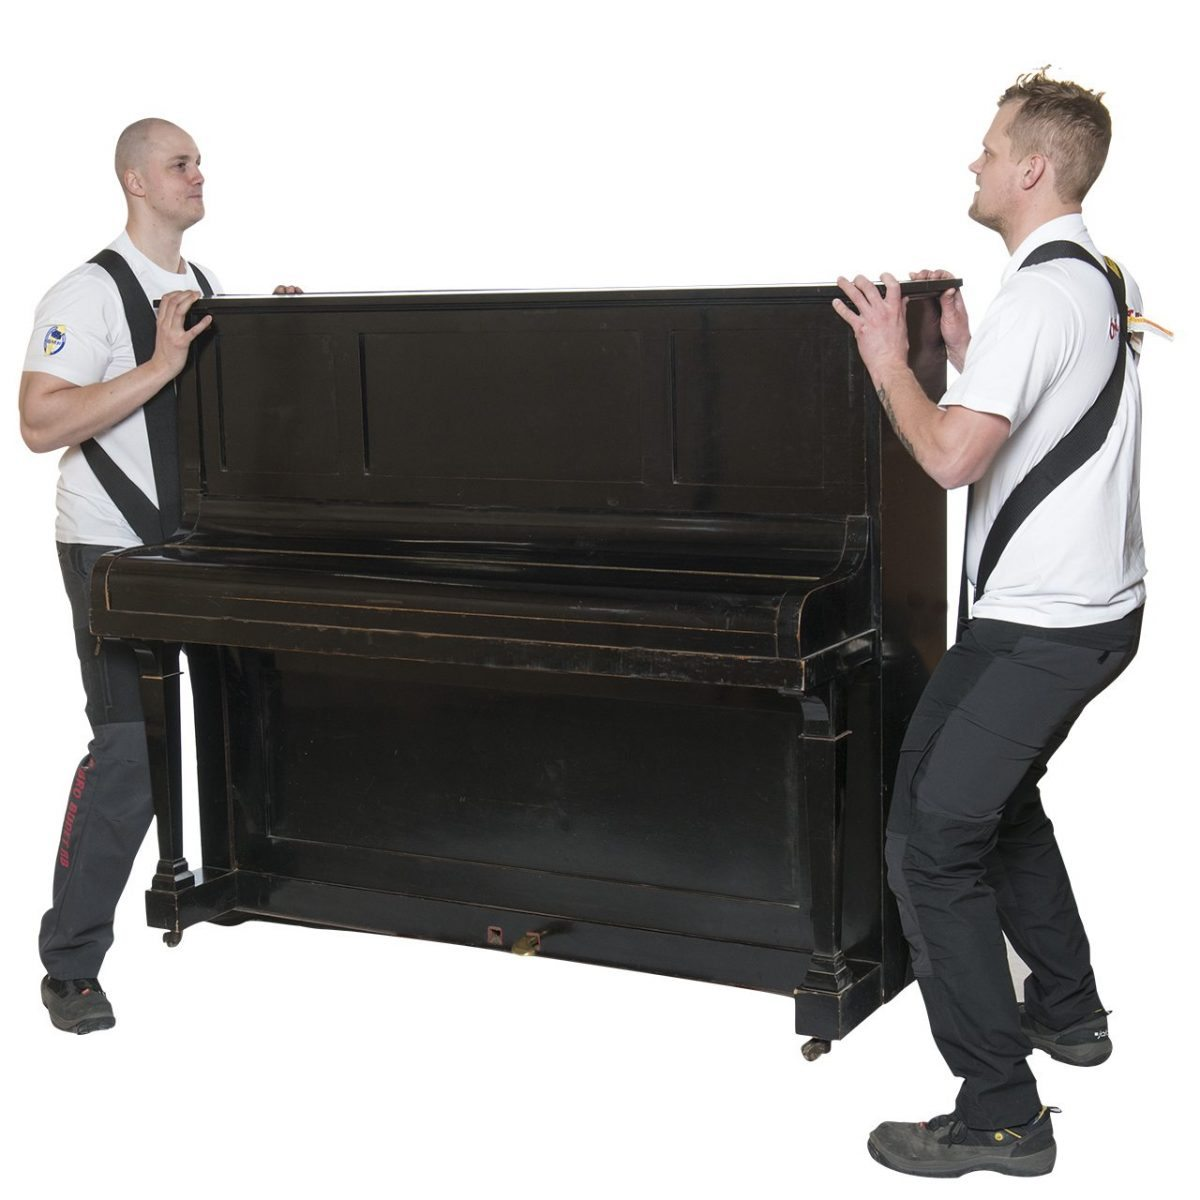 Piano-movers-miami